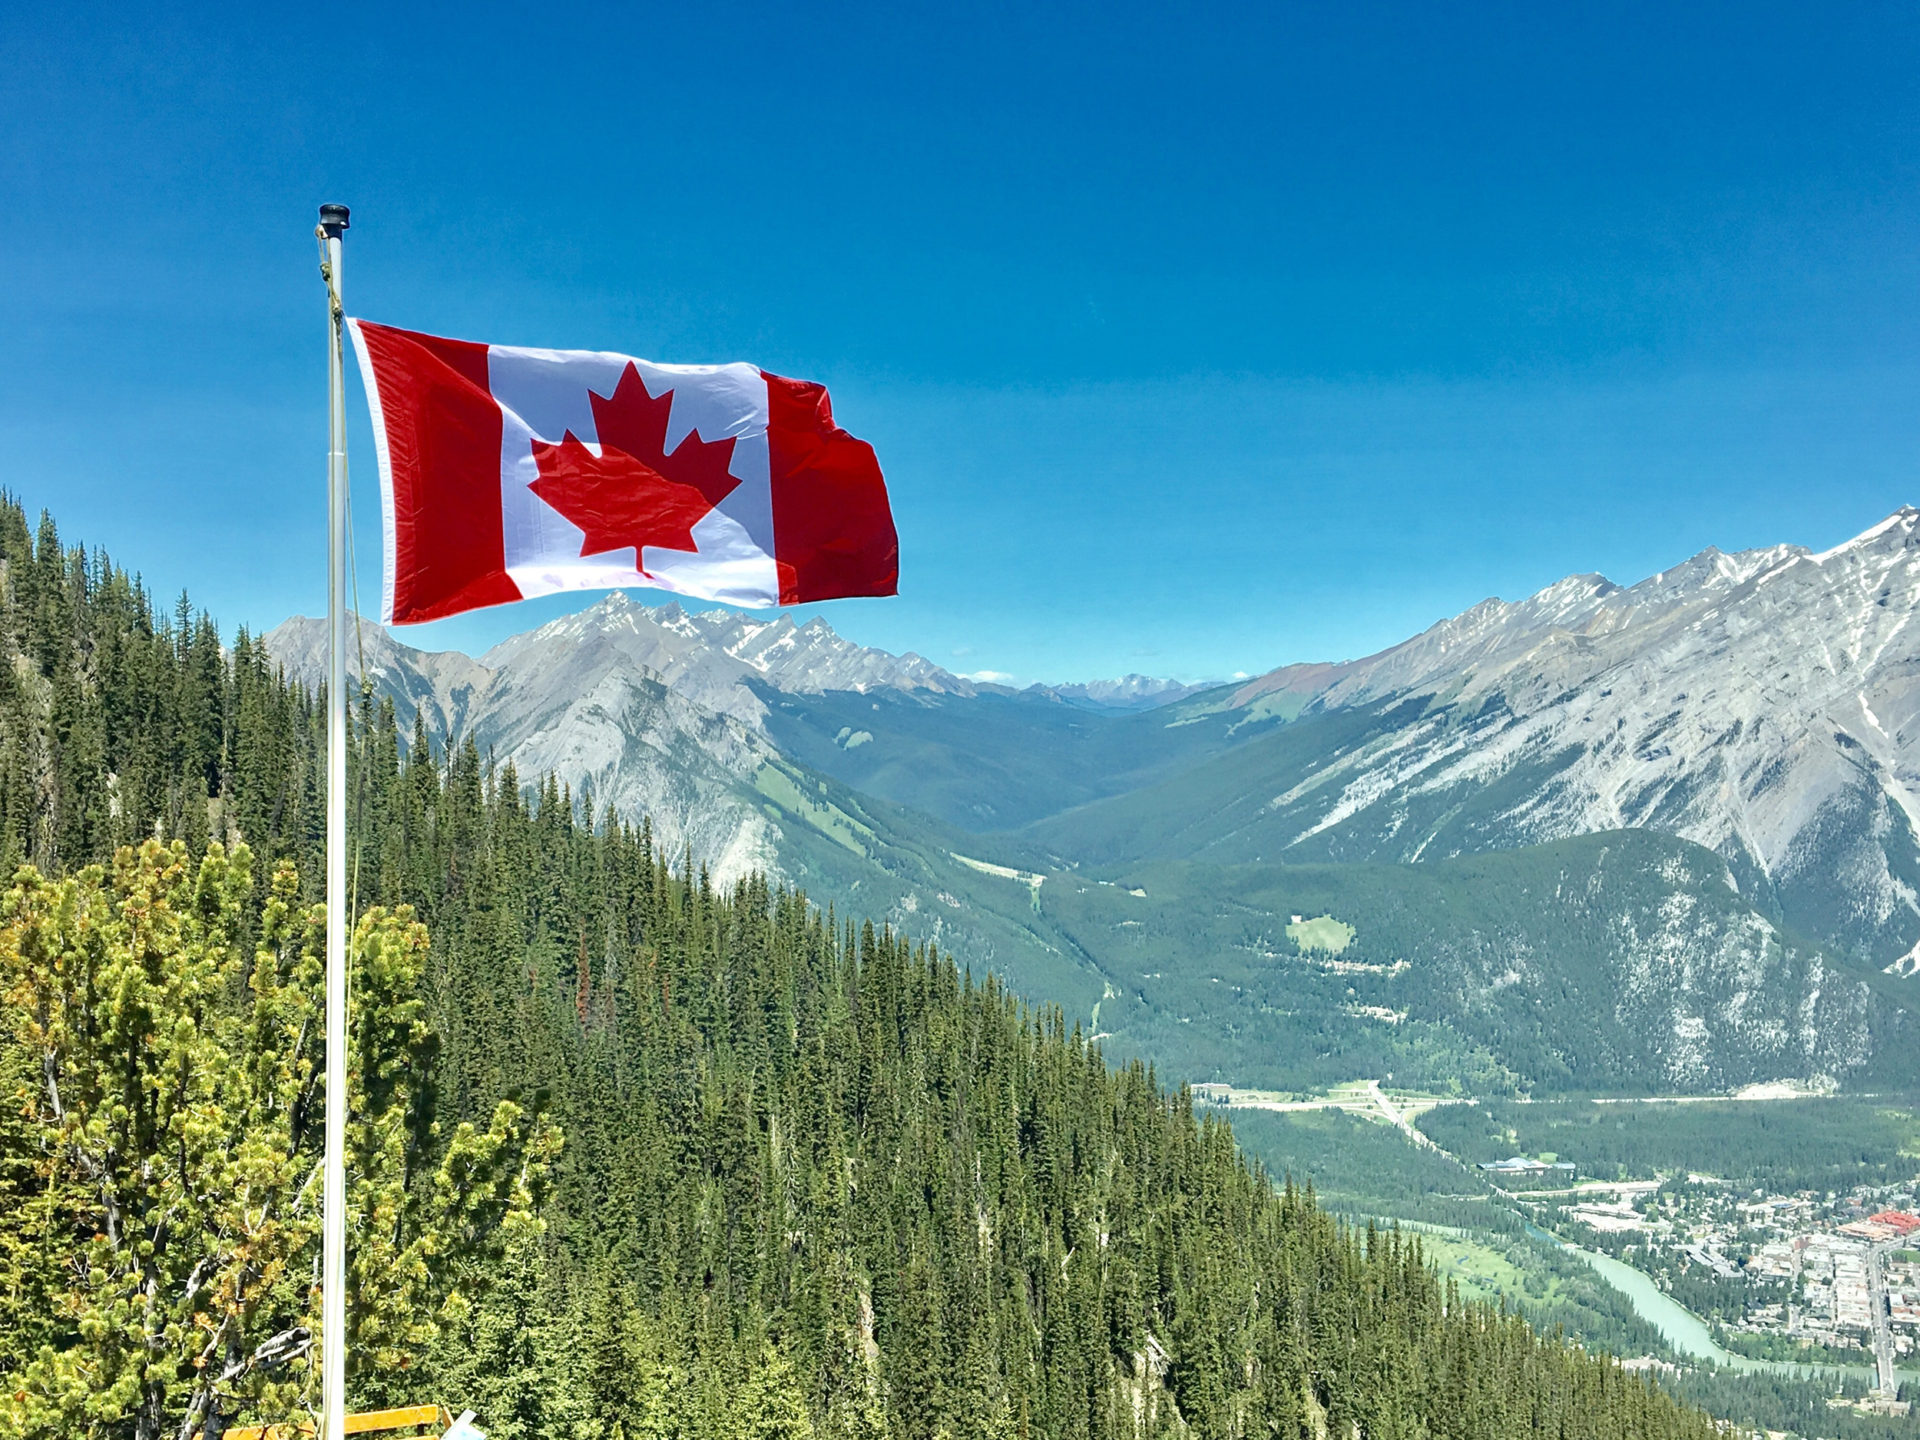 Canada-Flag-at-Greenery-with-Mountain-View